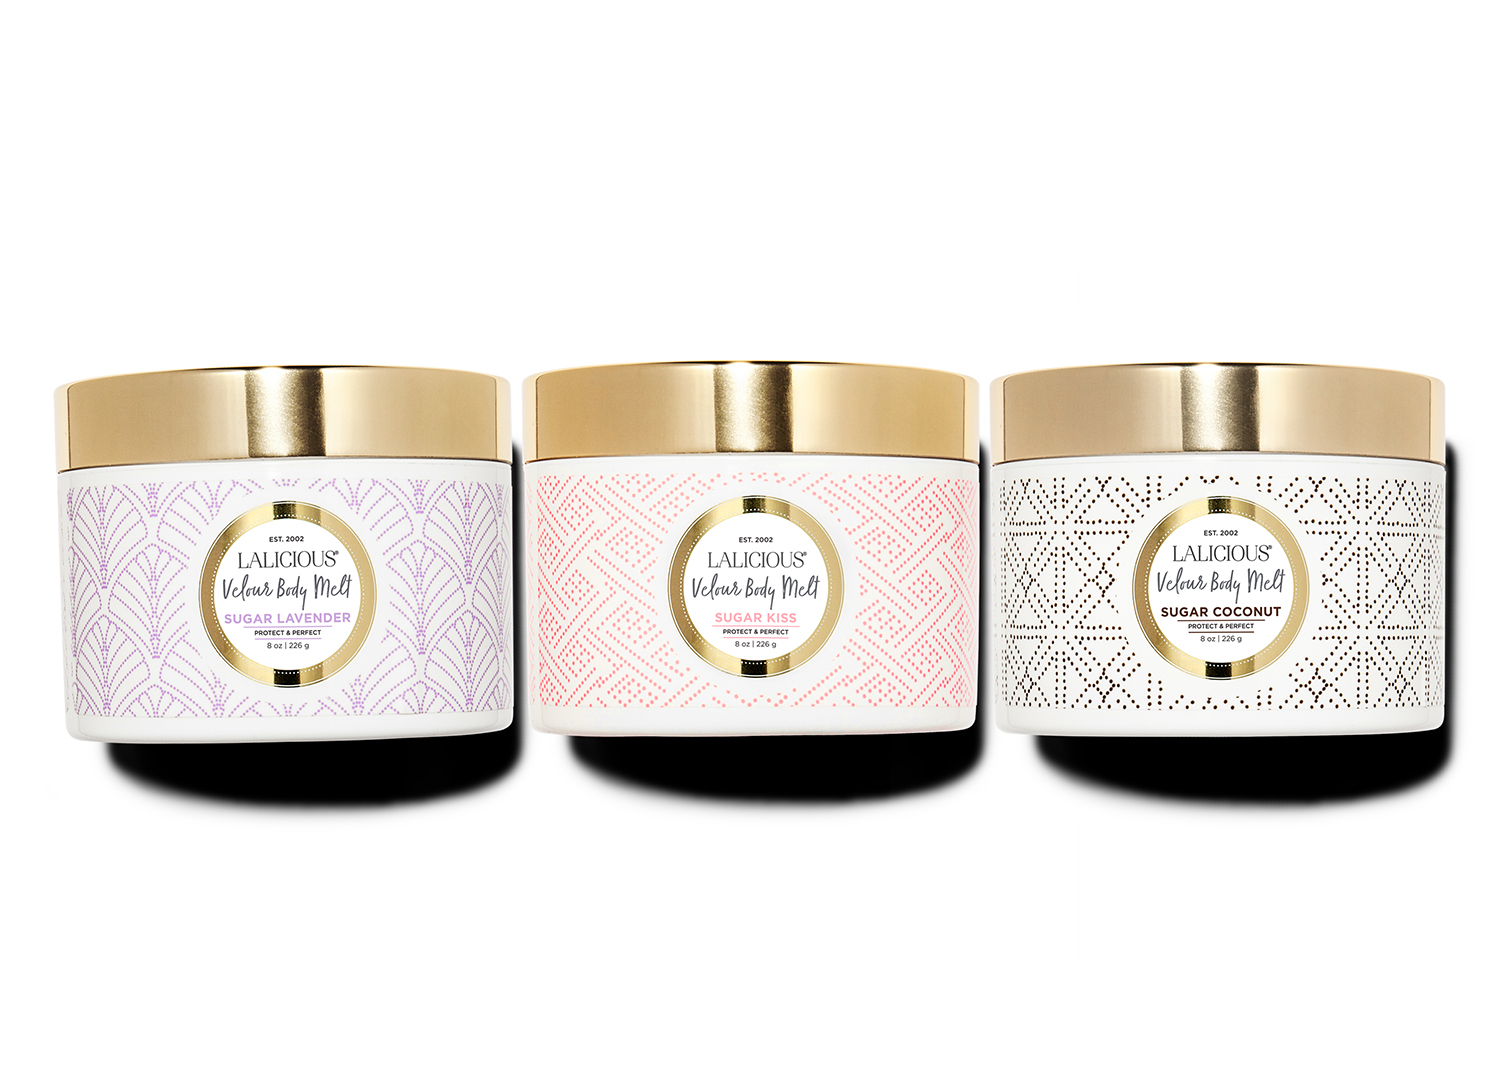 The LALICIOUS Velour Body Melt comes in three divine fragrances.